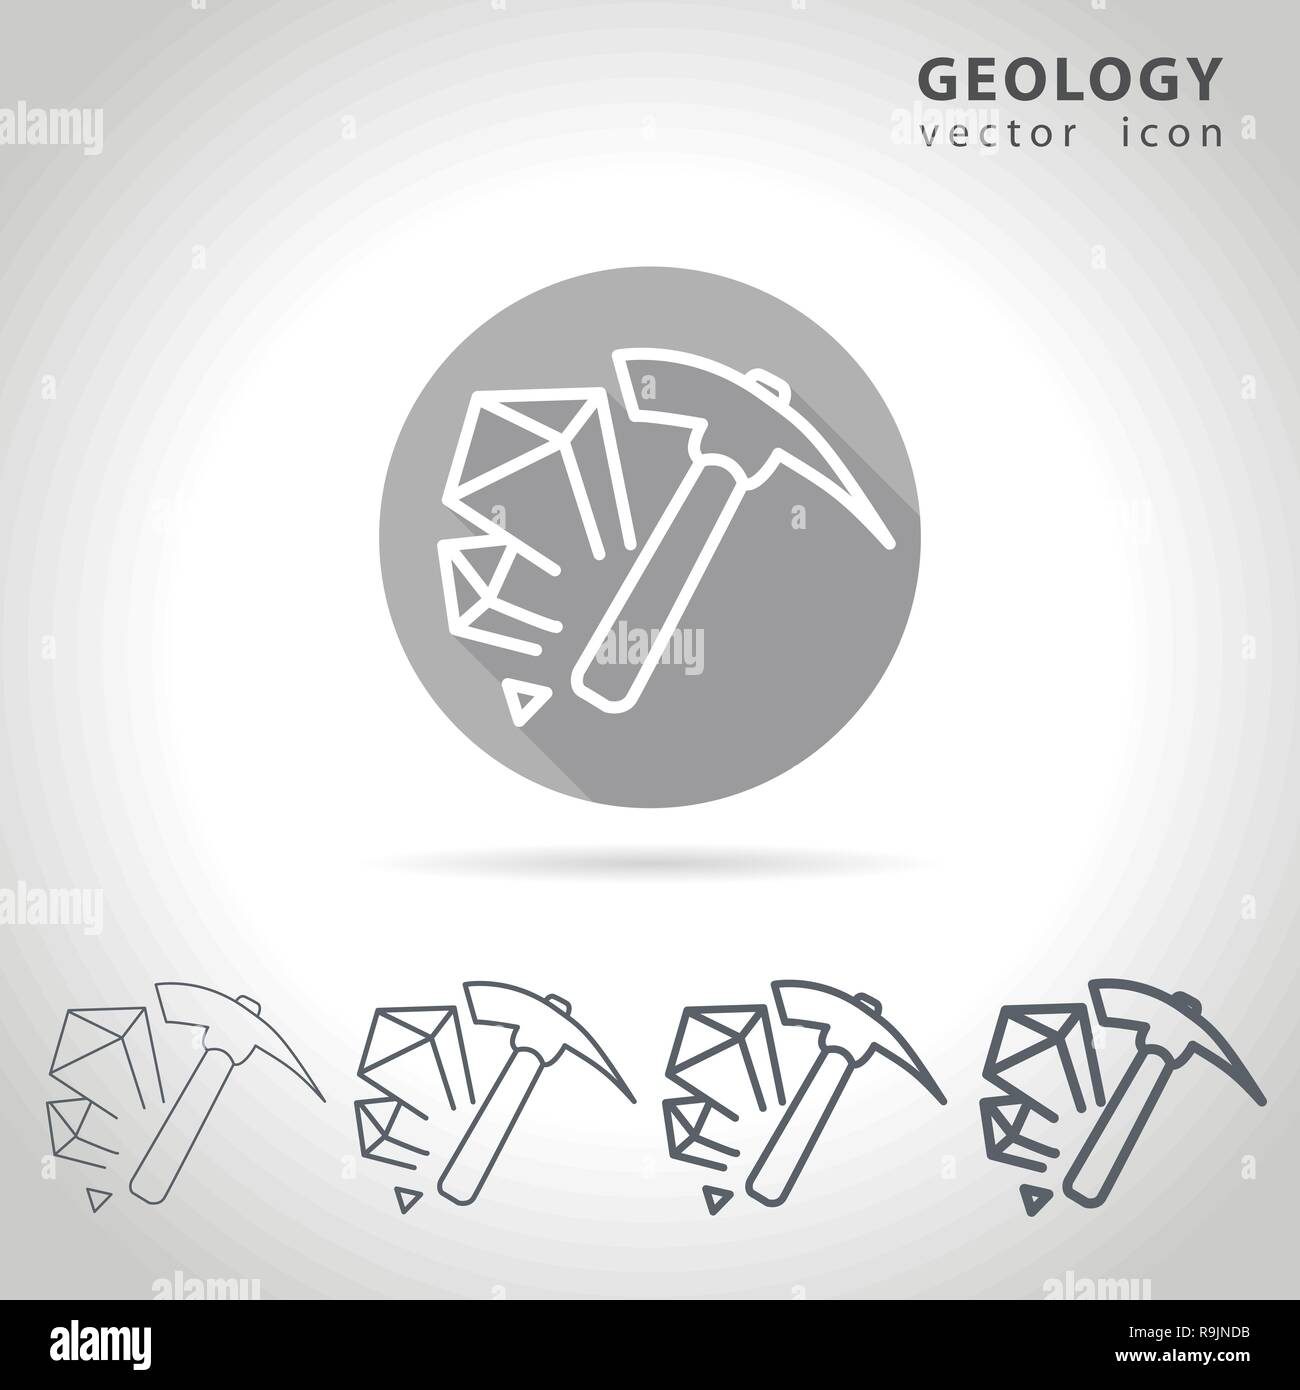 Geology outline icon - Stock Vector